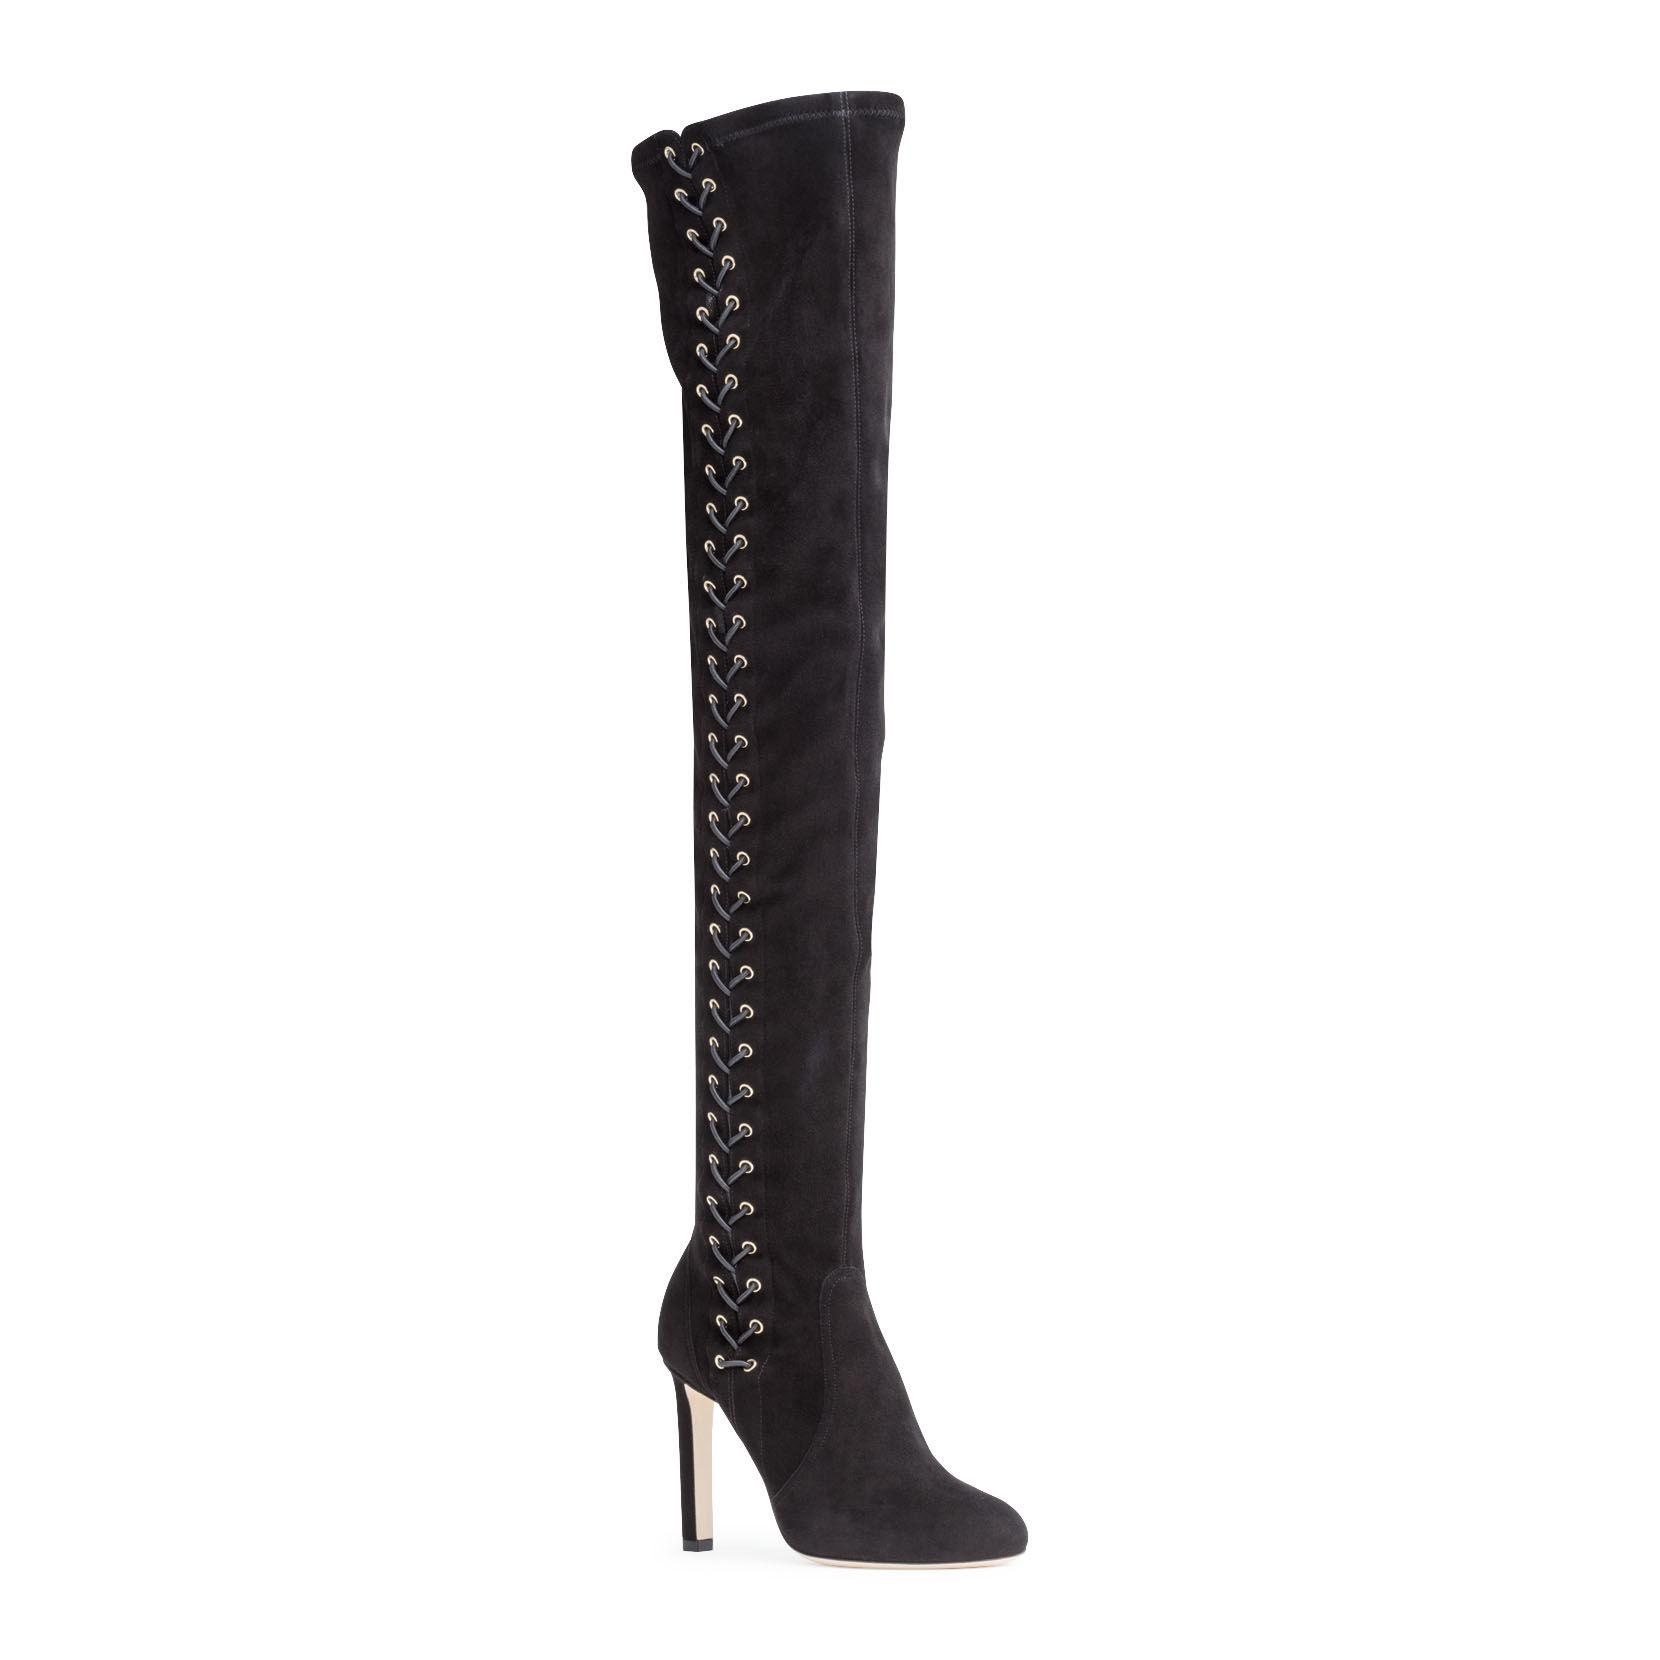 020dd3a5bee Jimmy Choo Marie 100 Black Suede Over The Knee Boots in Black - Lyst